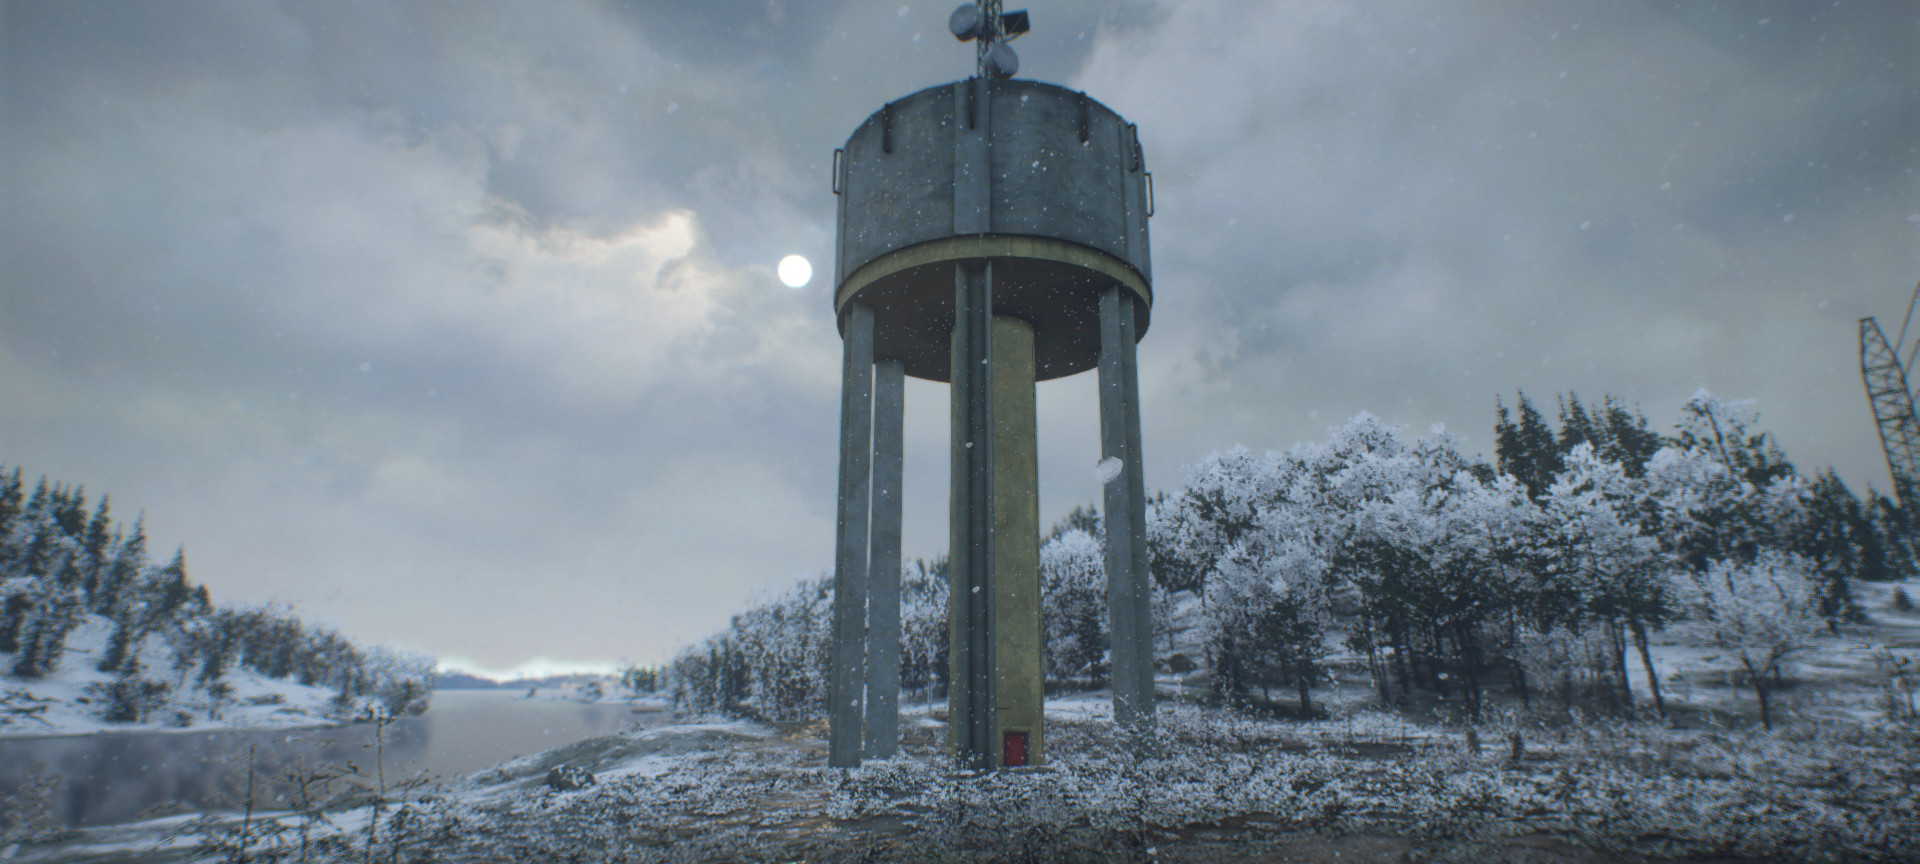 Daniel ketterman water tower 3